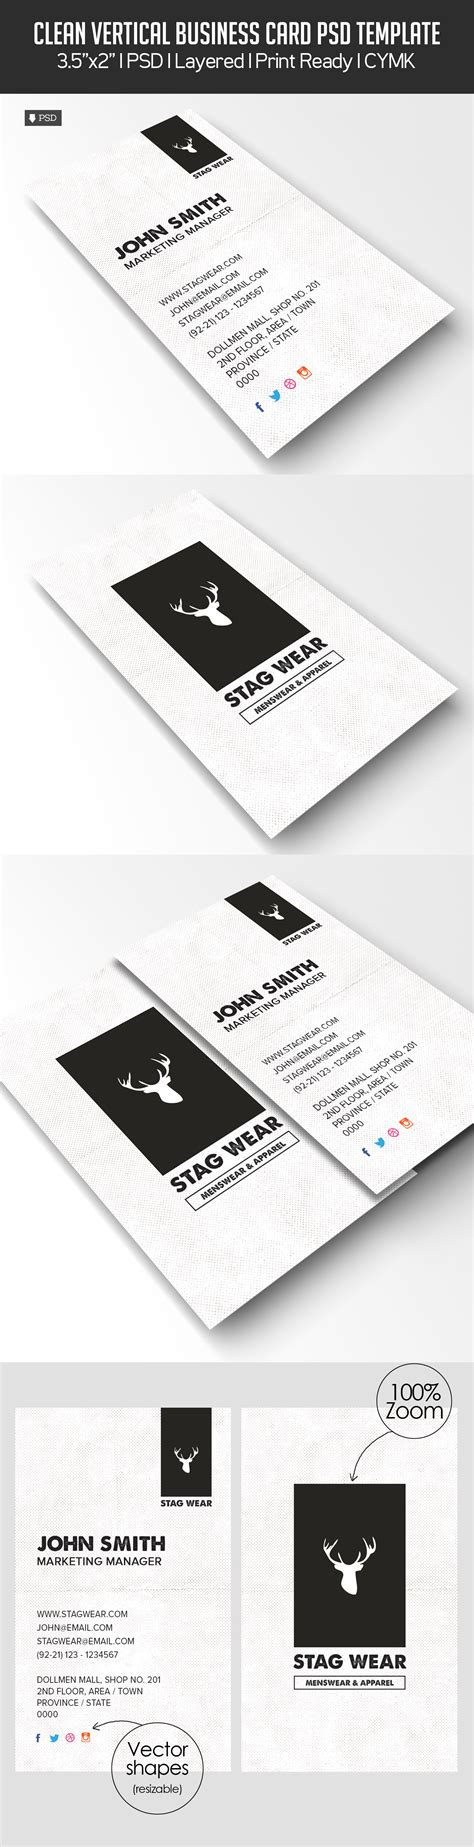 template for vertical business cards freebie vertical business card psd template freebies